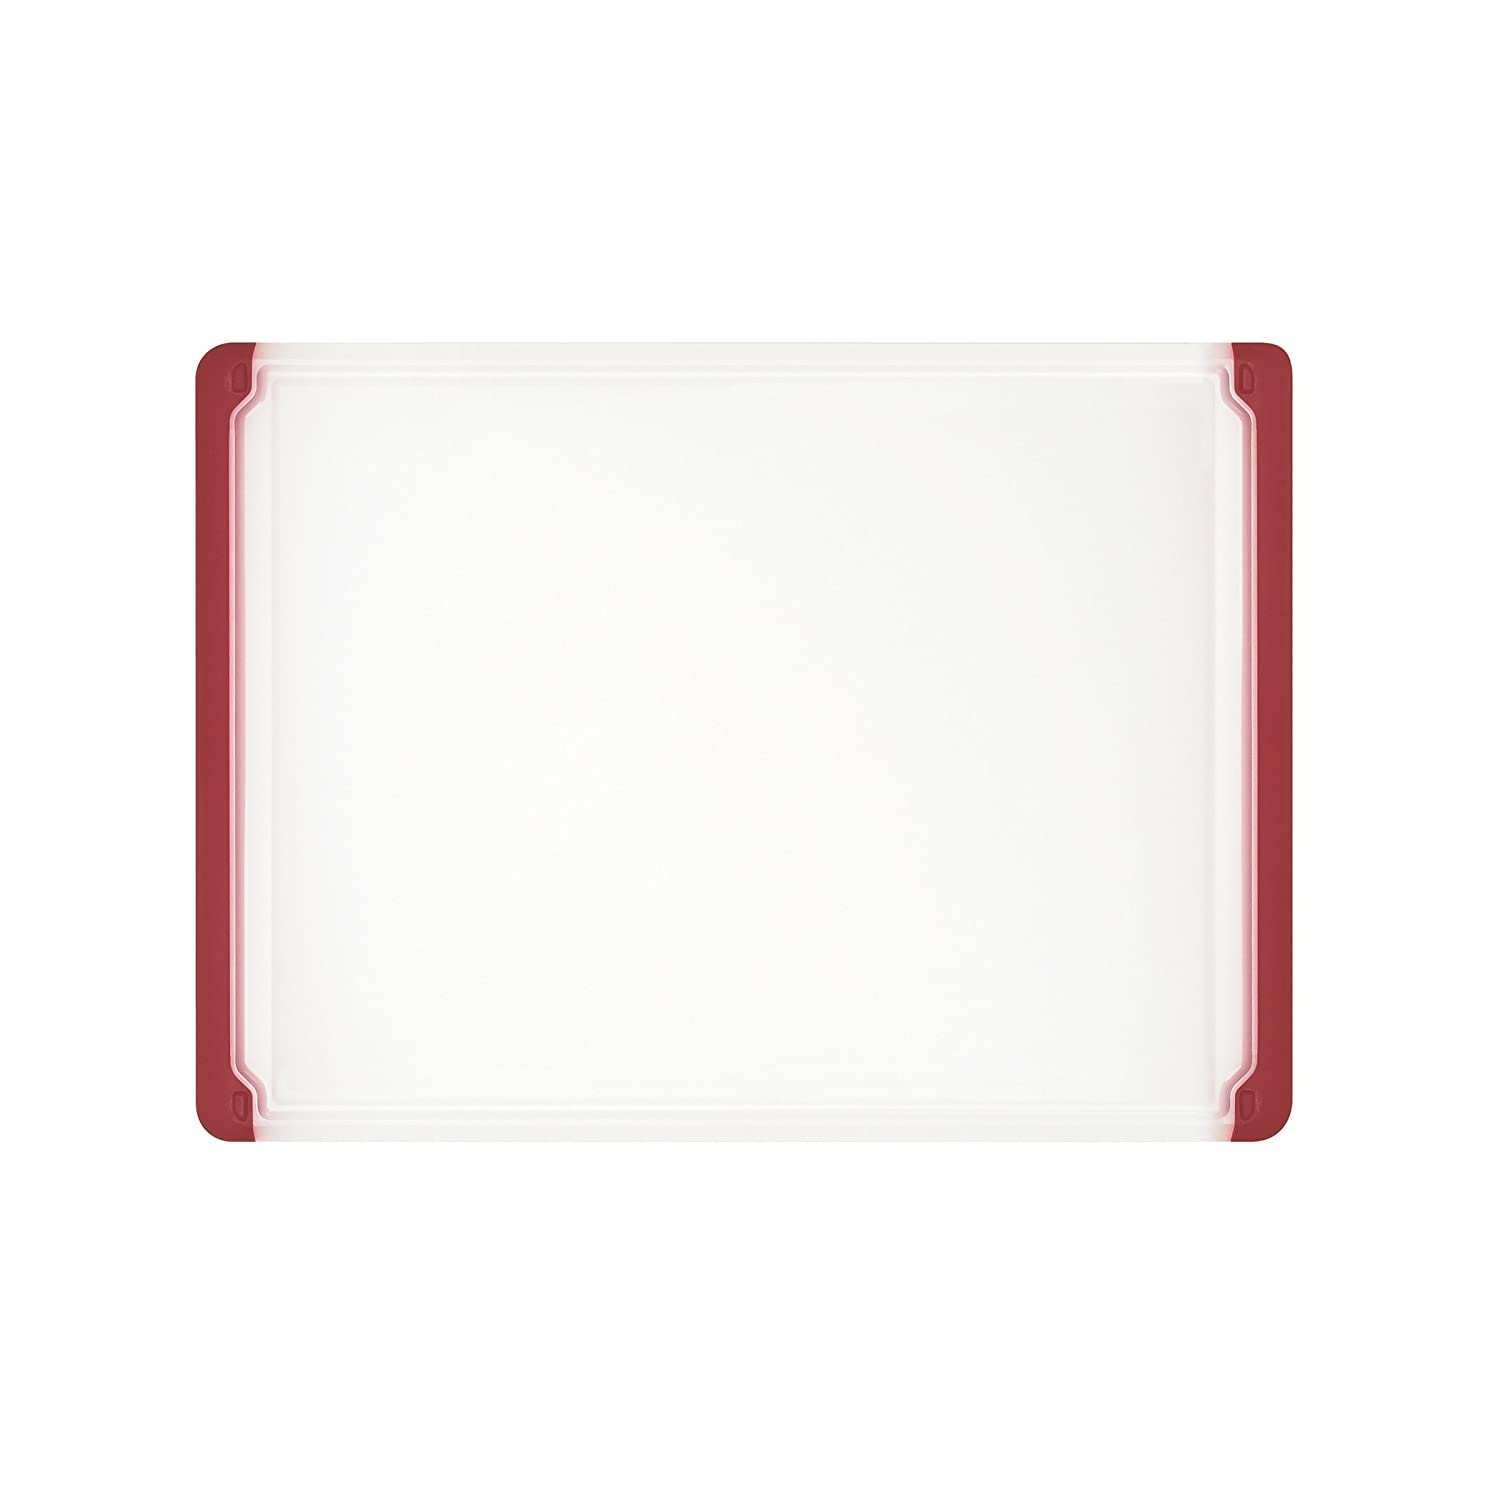 OXO Good Grips 10.5 x 14.5 Utility Cutting Board